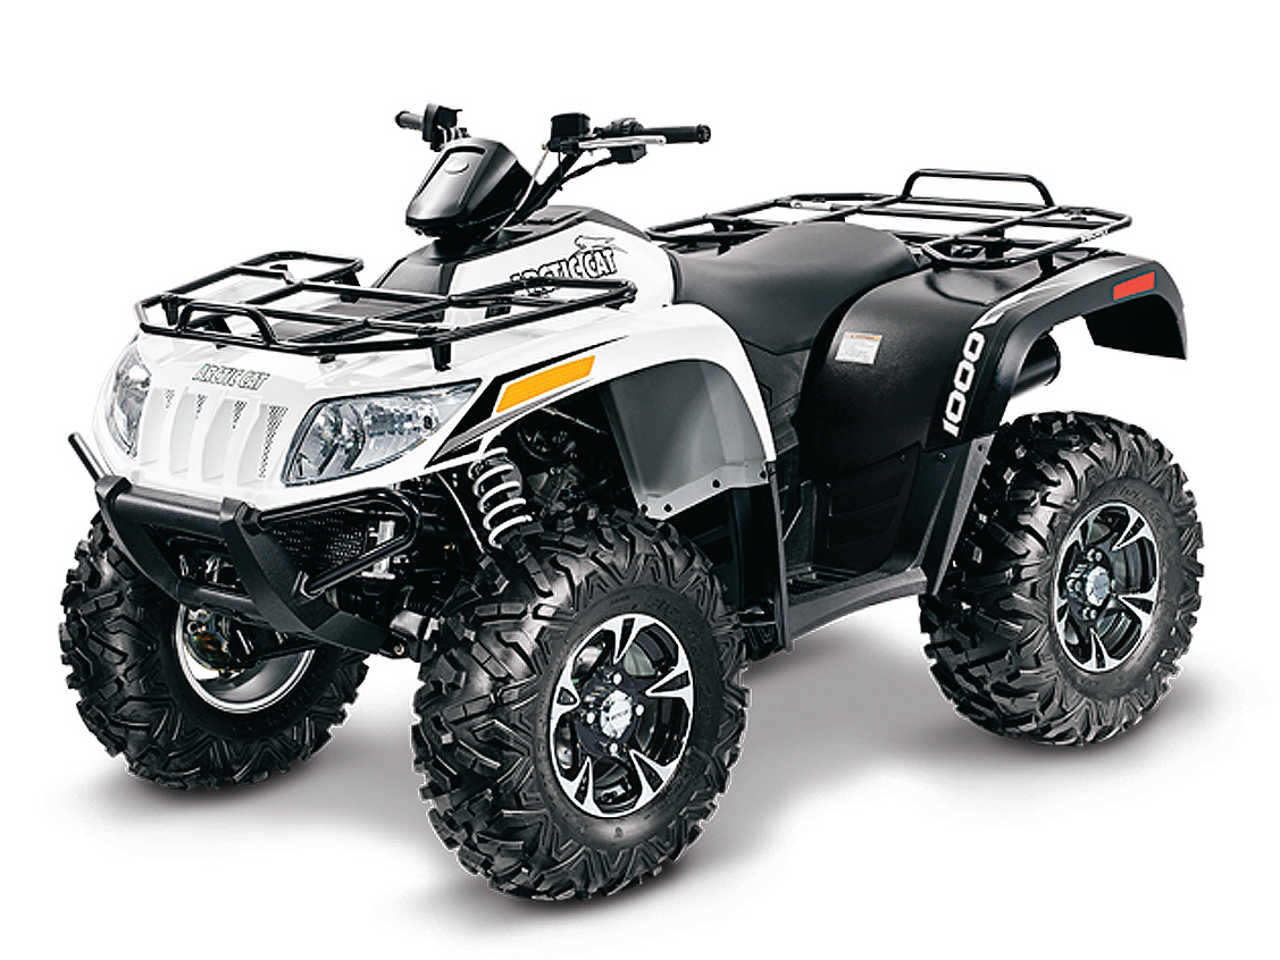 new model atvs the arctic cat atv lineup atv illustrated. Black Bedroom Furniture Sets. Home Design Ideas